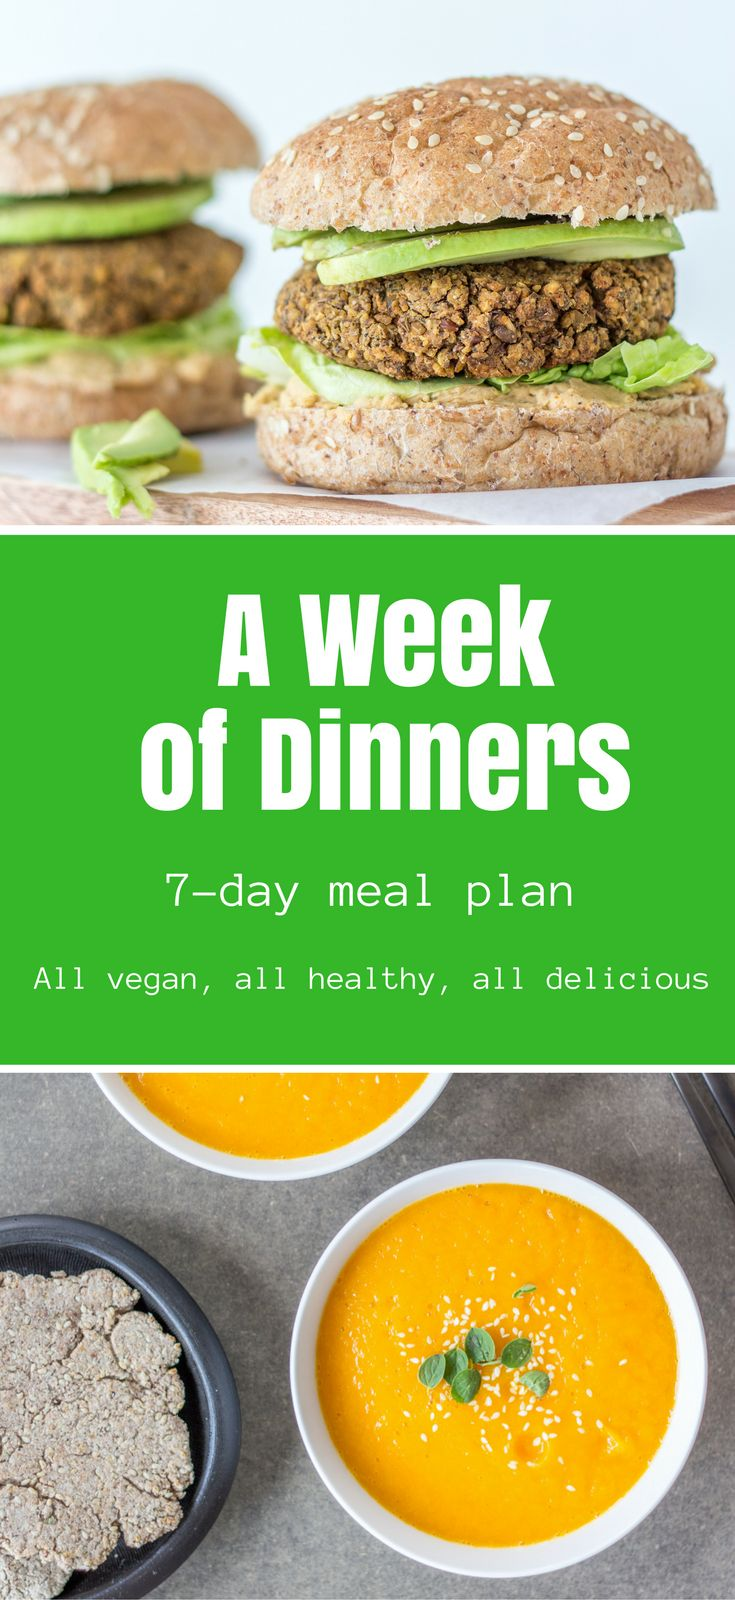 A Week of Dinners will help make dinner simple, healthy, and delicious. All recipes are plant-based / vegan.    With this cookbook you don't have to worry about the grocery list, wasting ingredients, or planning the meals.